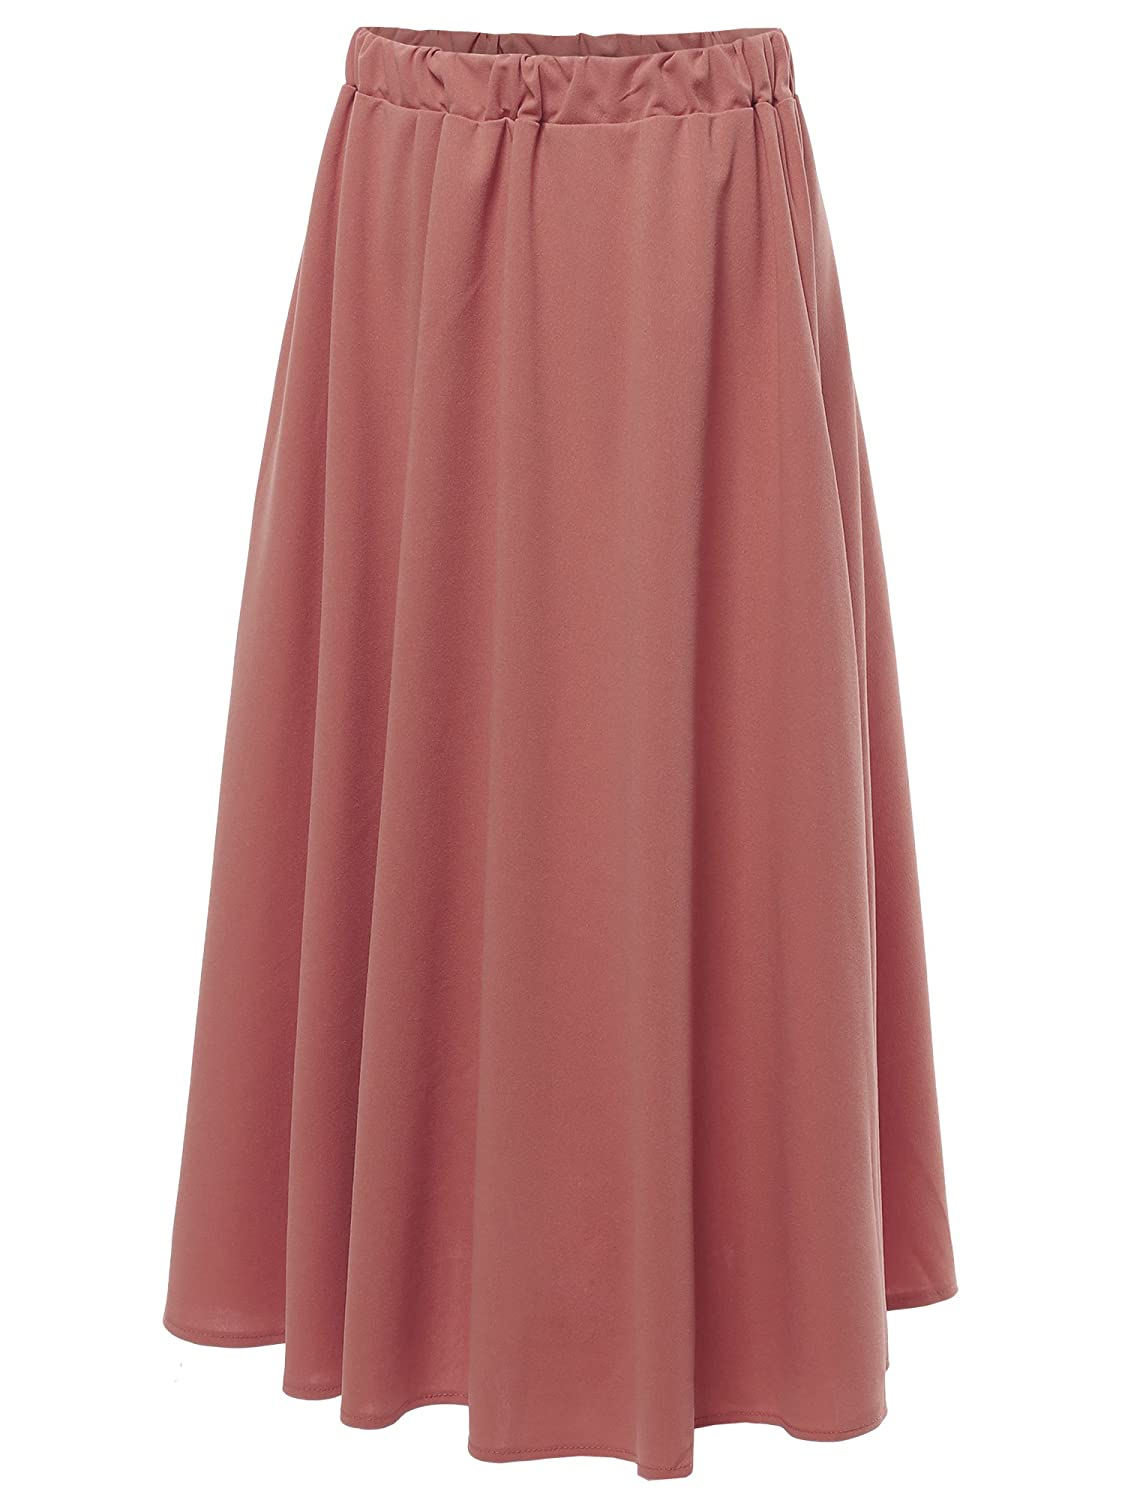 Aawskm0004 Mauve Awesome21 Women's Solid High Waist ALine Pleated Flare Skirt  Made in USA